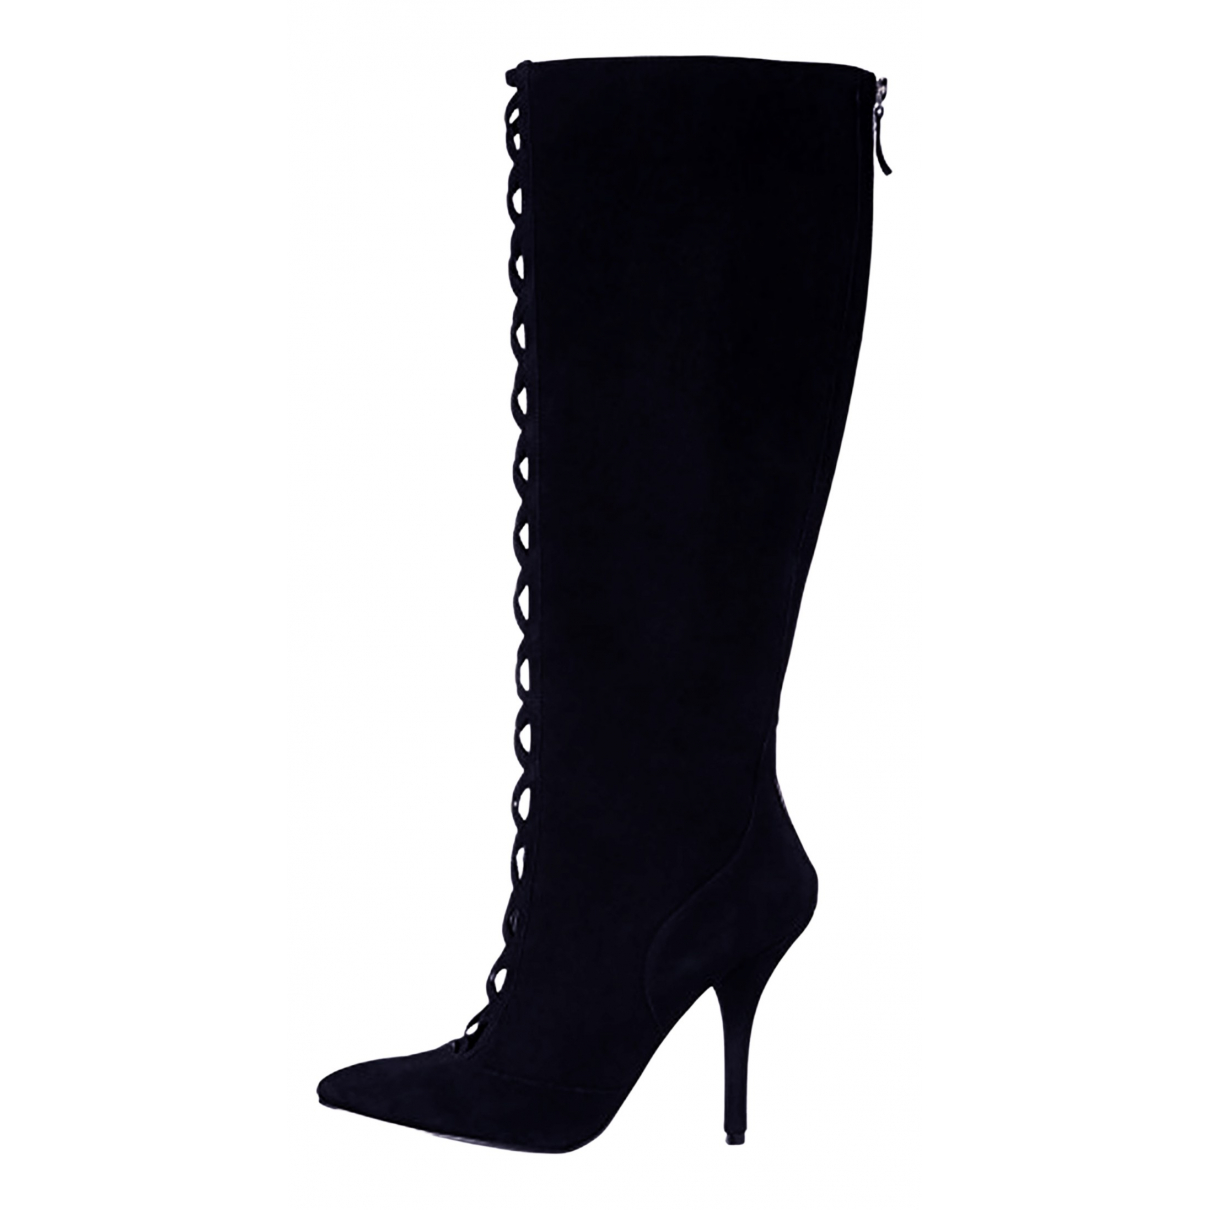 Nine West N Black Suede Boots for Women 37.5 EU